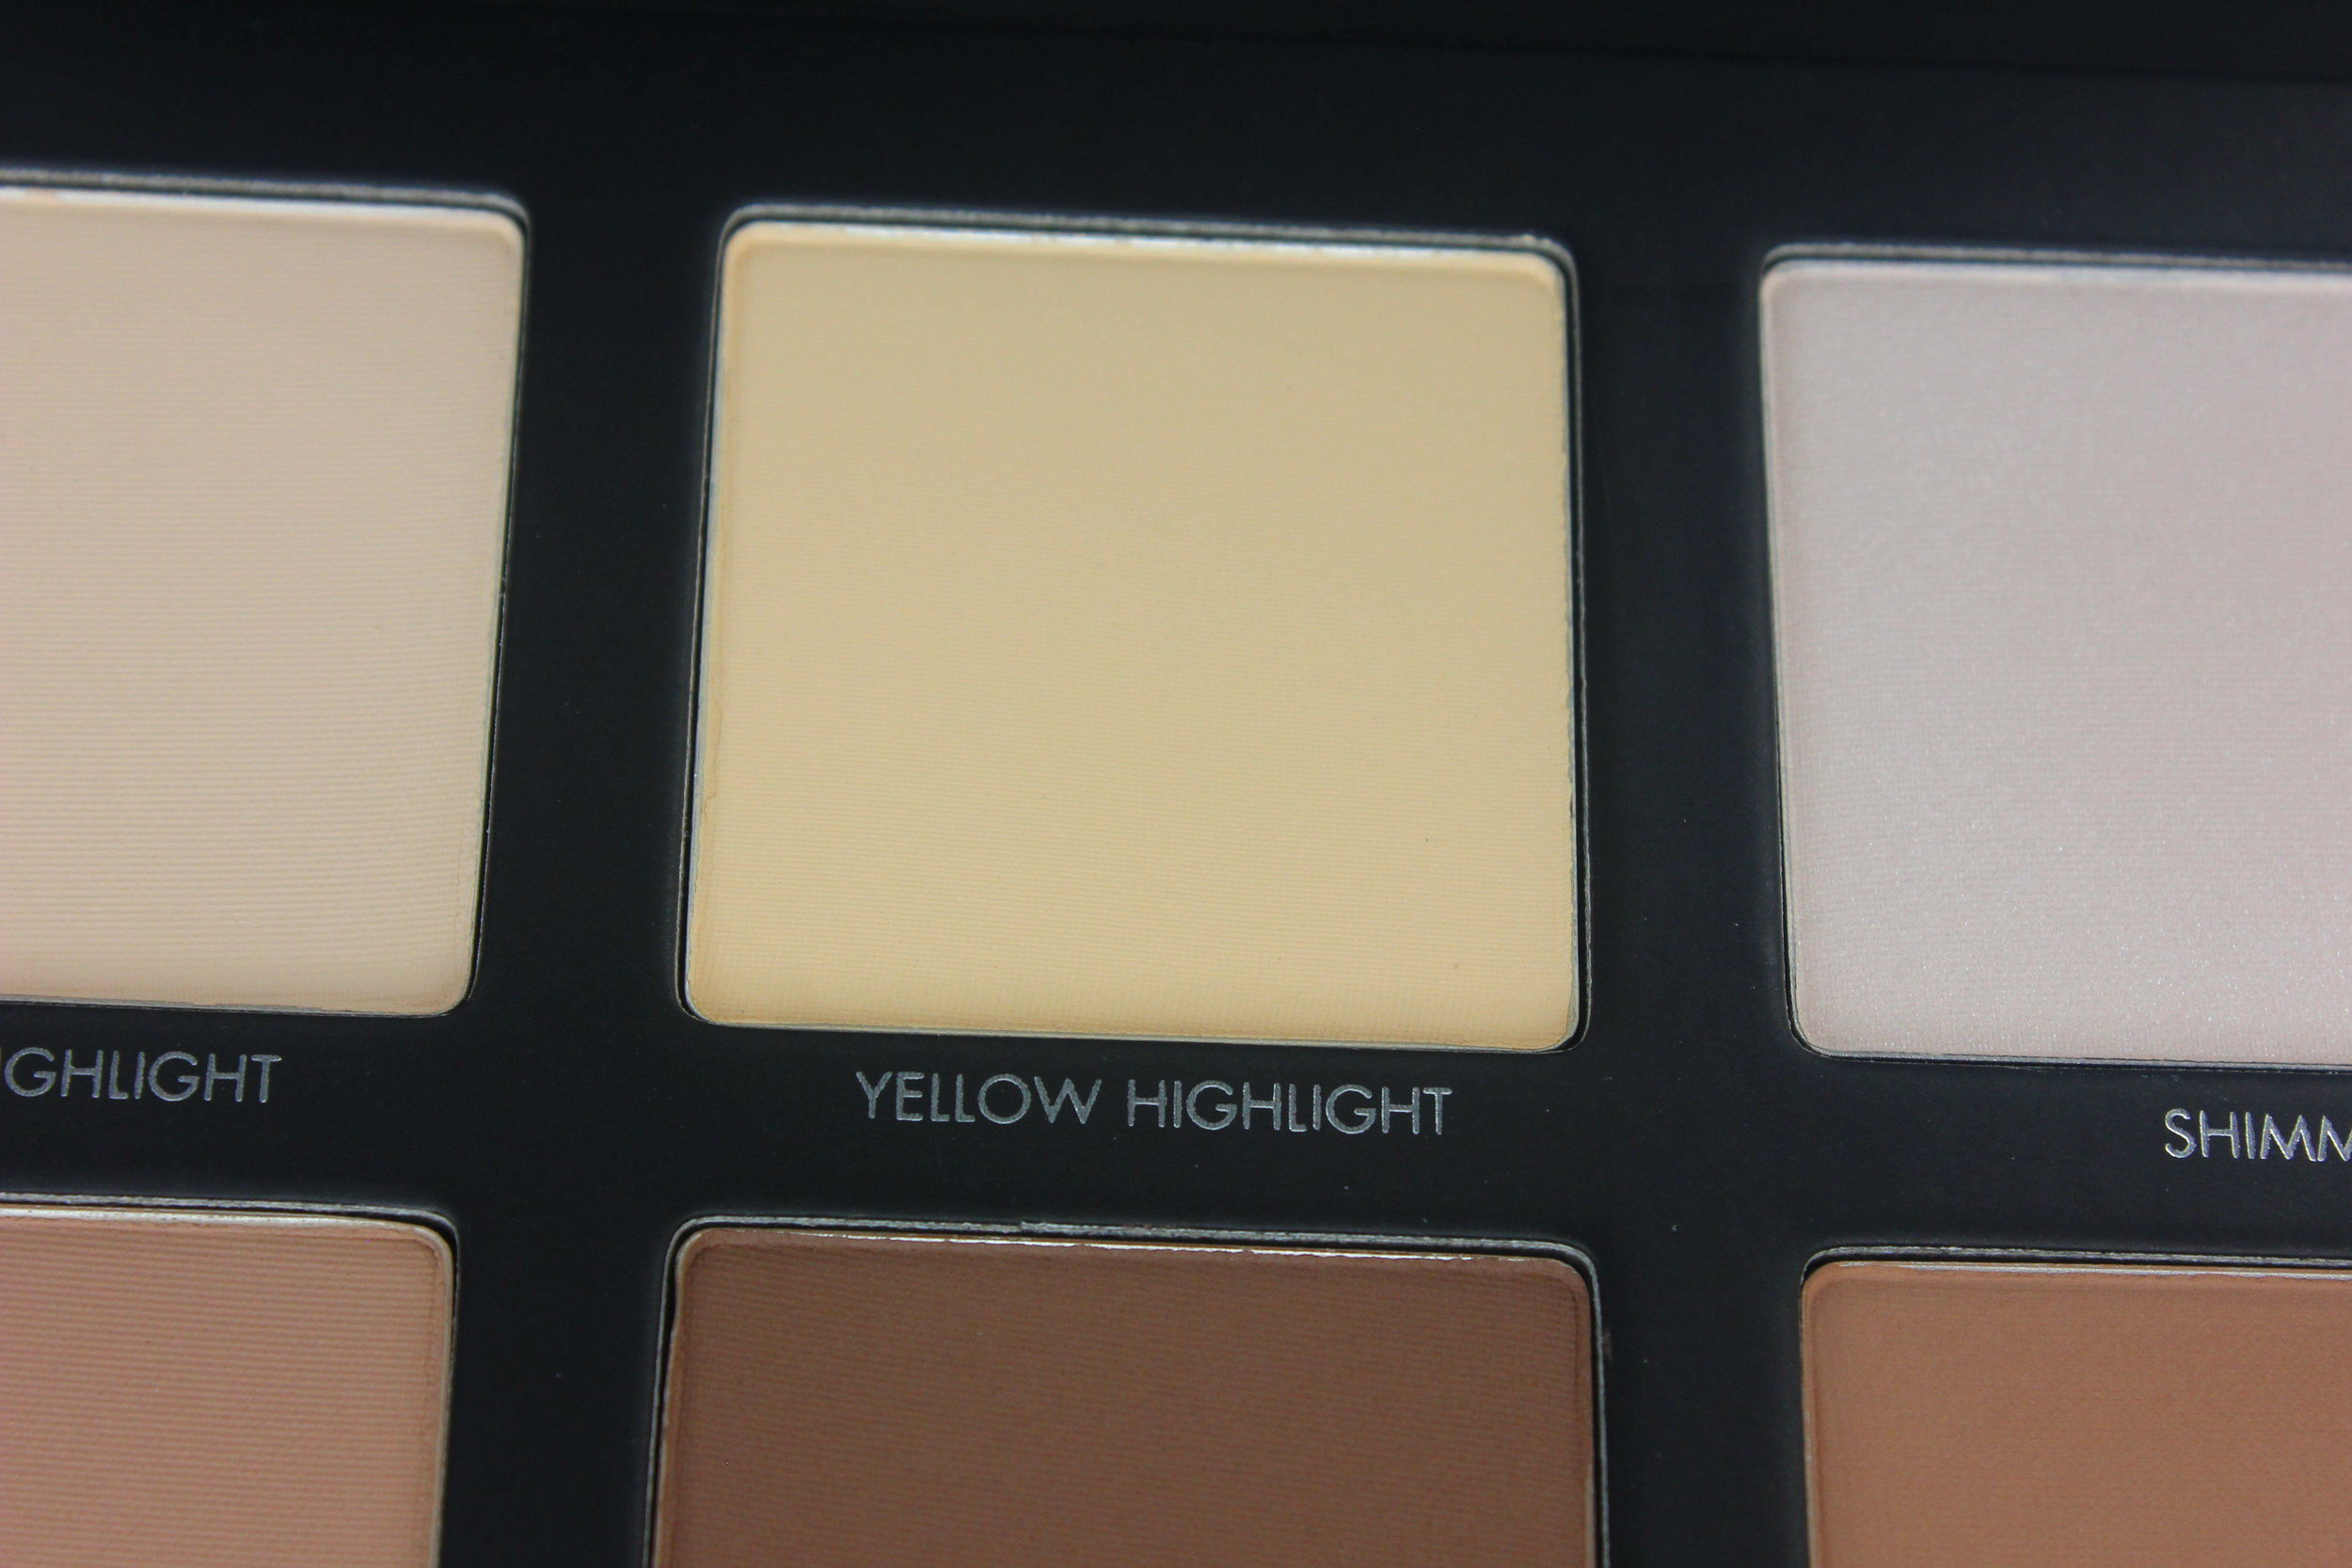 Lorac Pro Contour Palette - Yellow Highlight Swatch 1.JPG